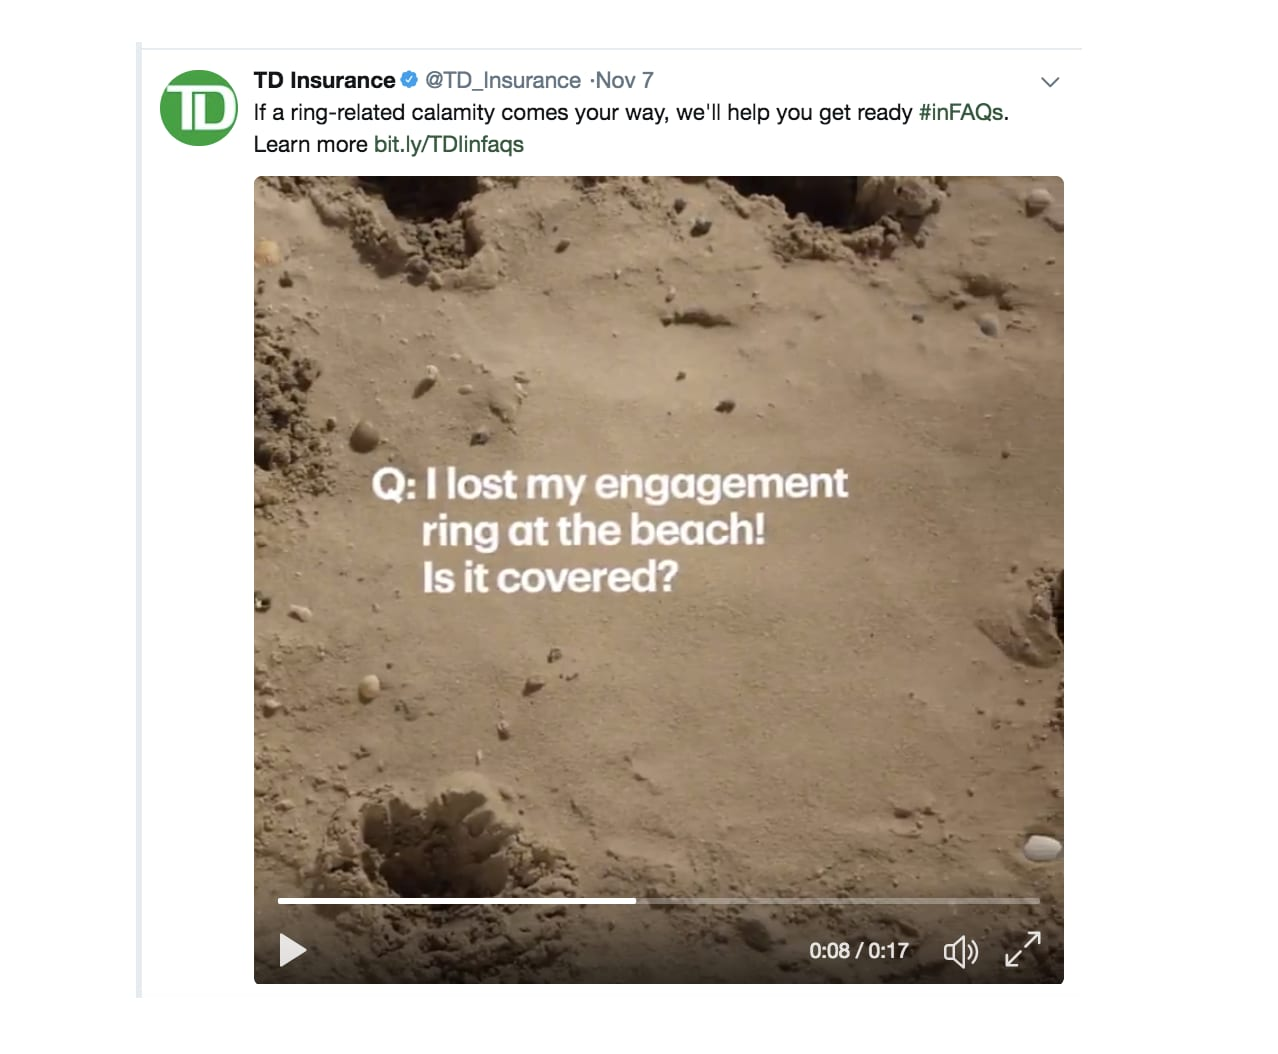 TD Bank | Insurance | #inFAQs Educational Digital Campaign